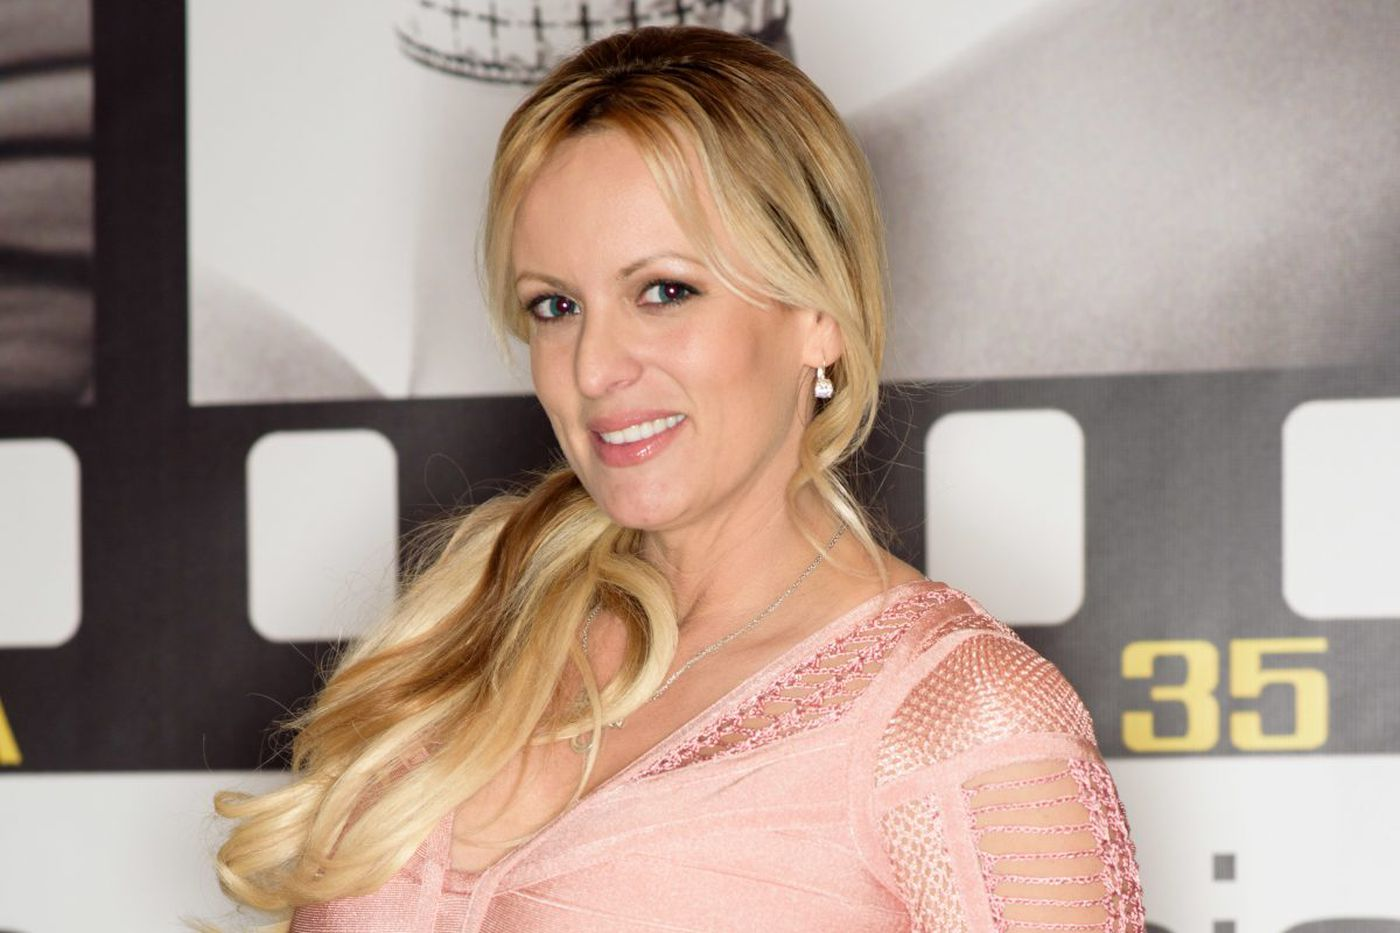 Stormy Daniels sues Trump, says hush agreement is null because he didn't sign it